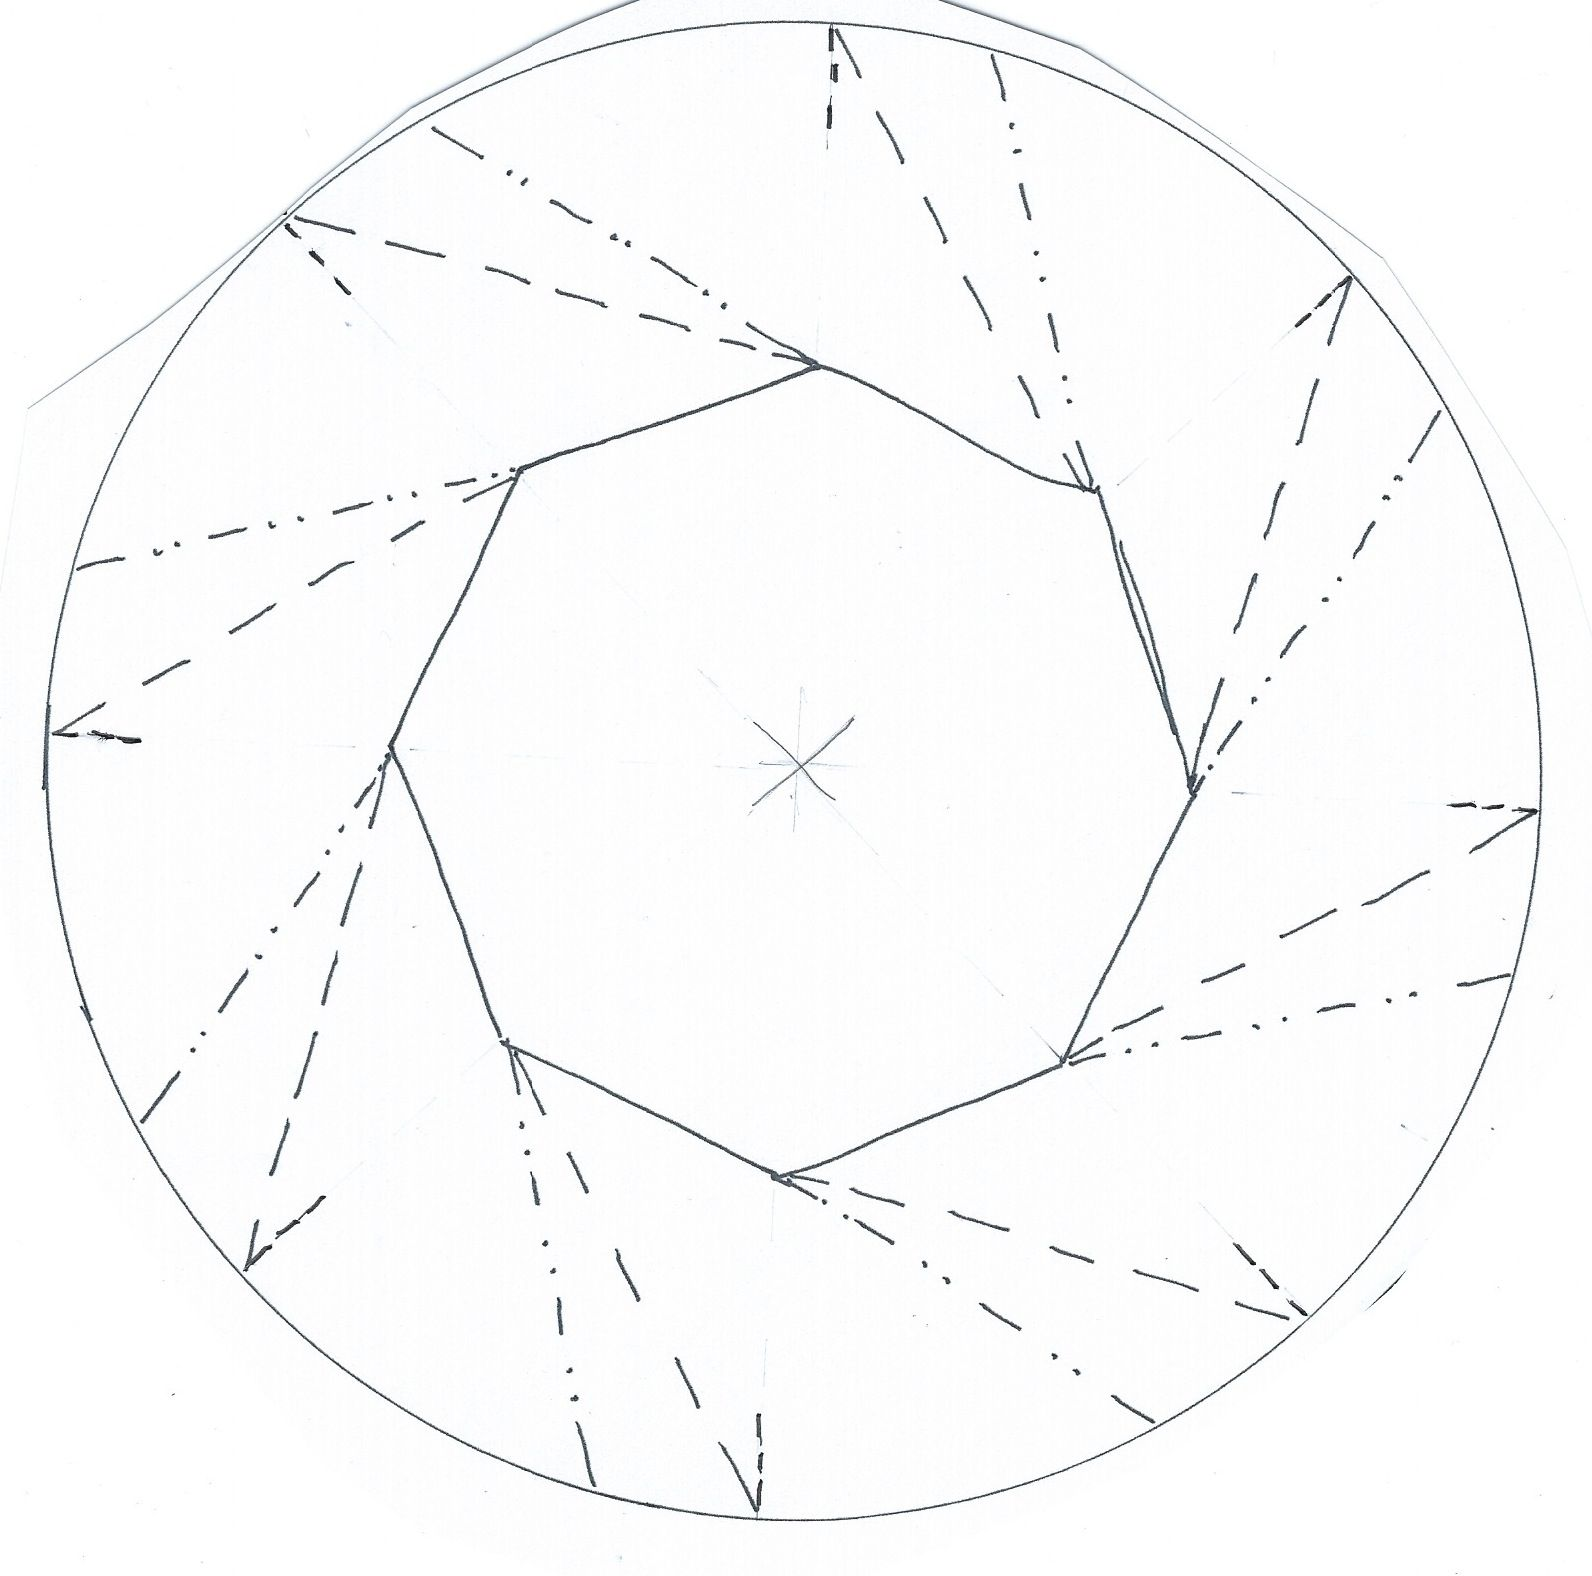 crease pattern for the origami bowl by rachel young  this is really basic